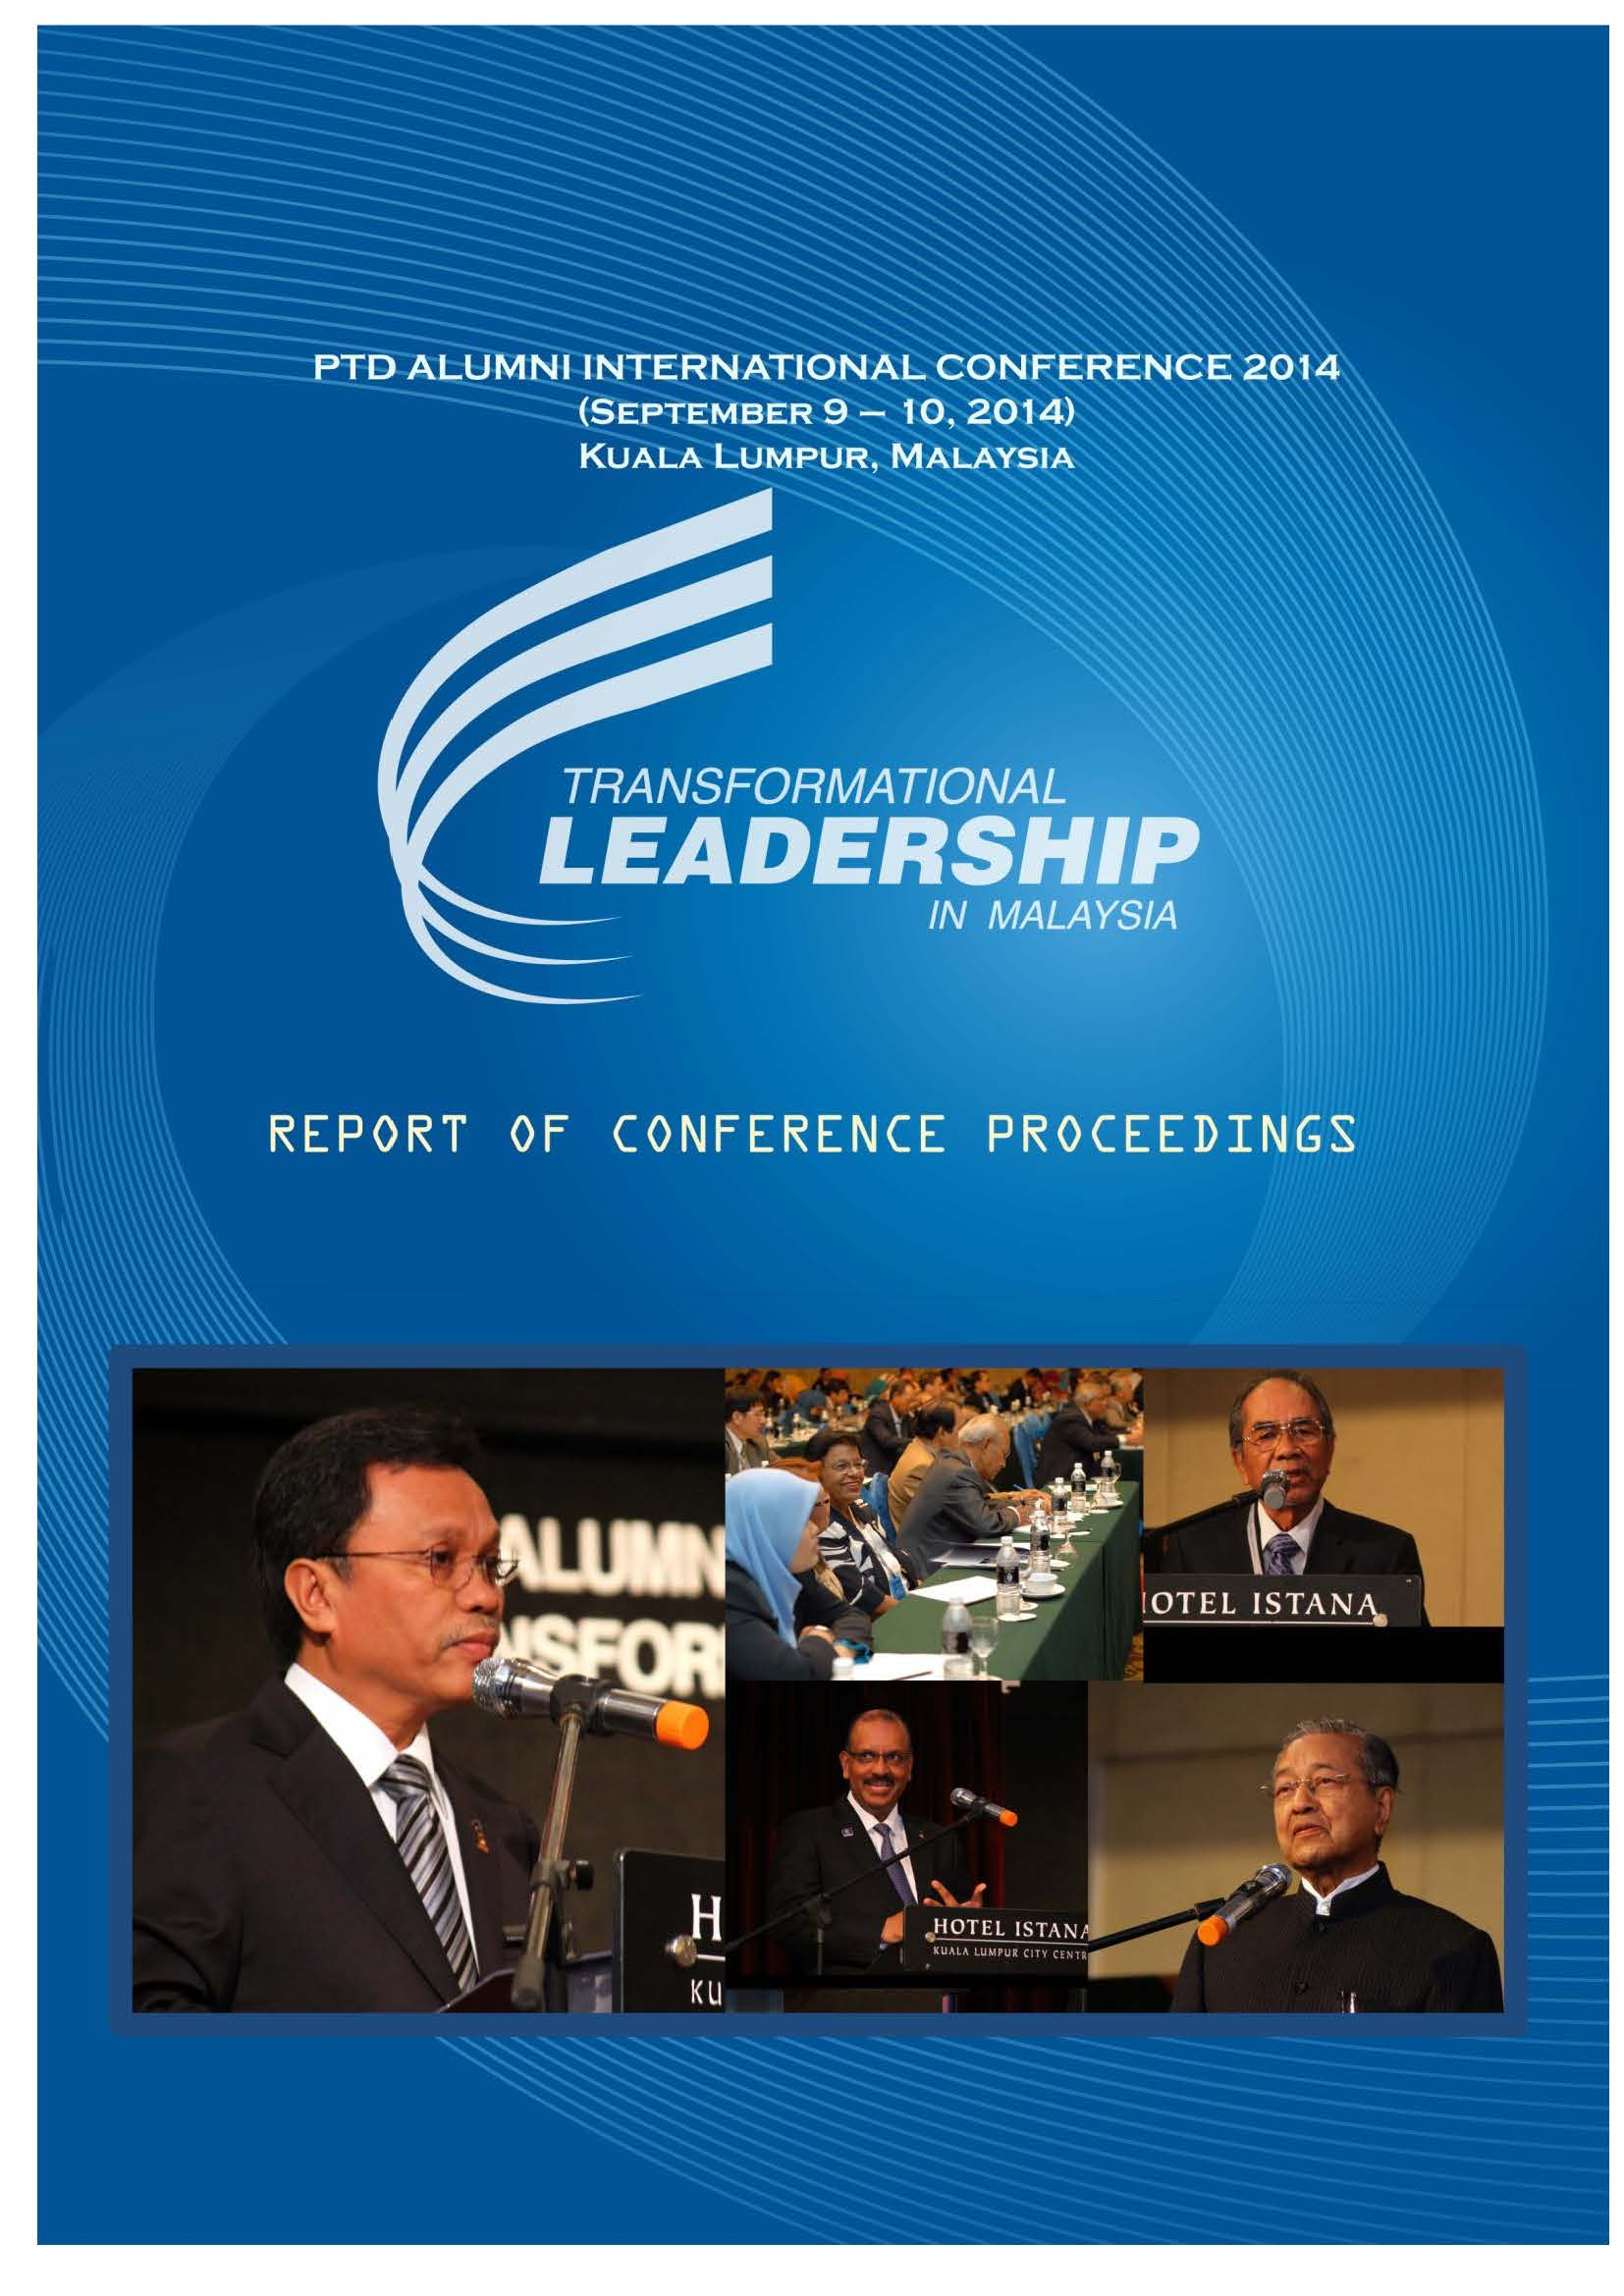 2014 Report on the PTD Alumni International Conference